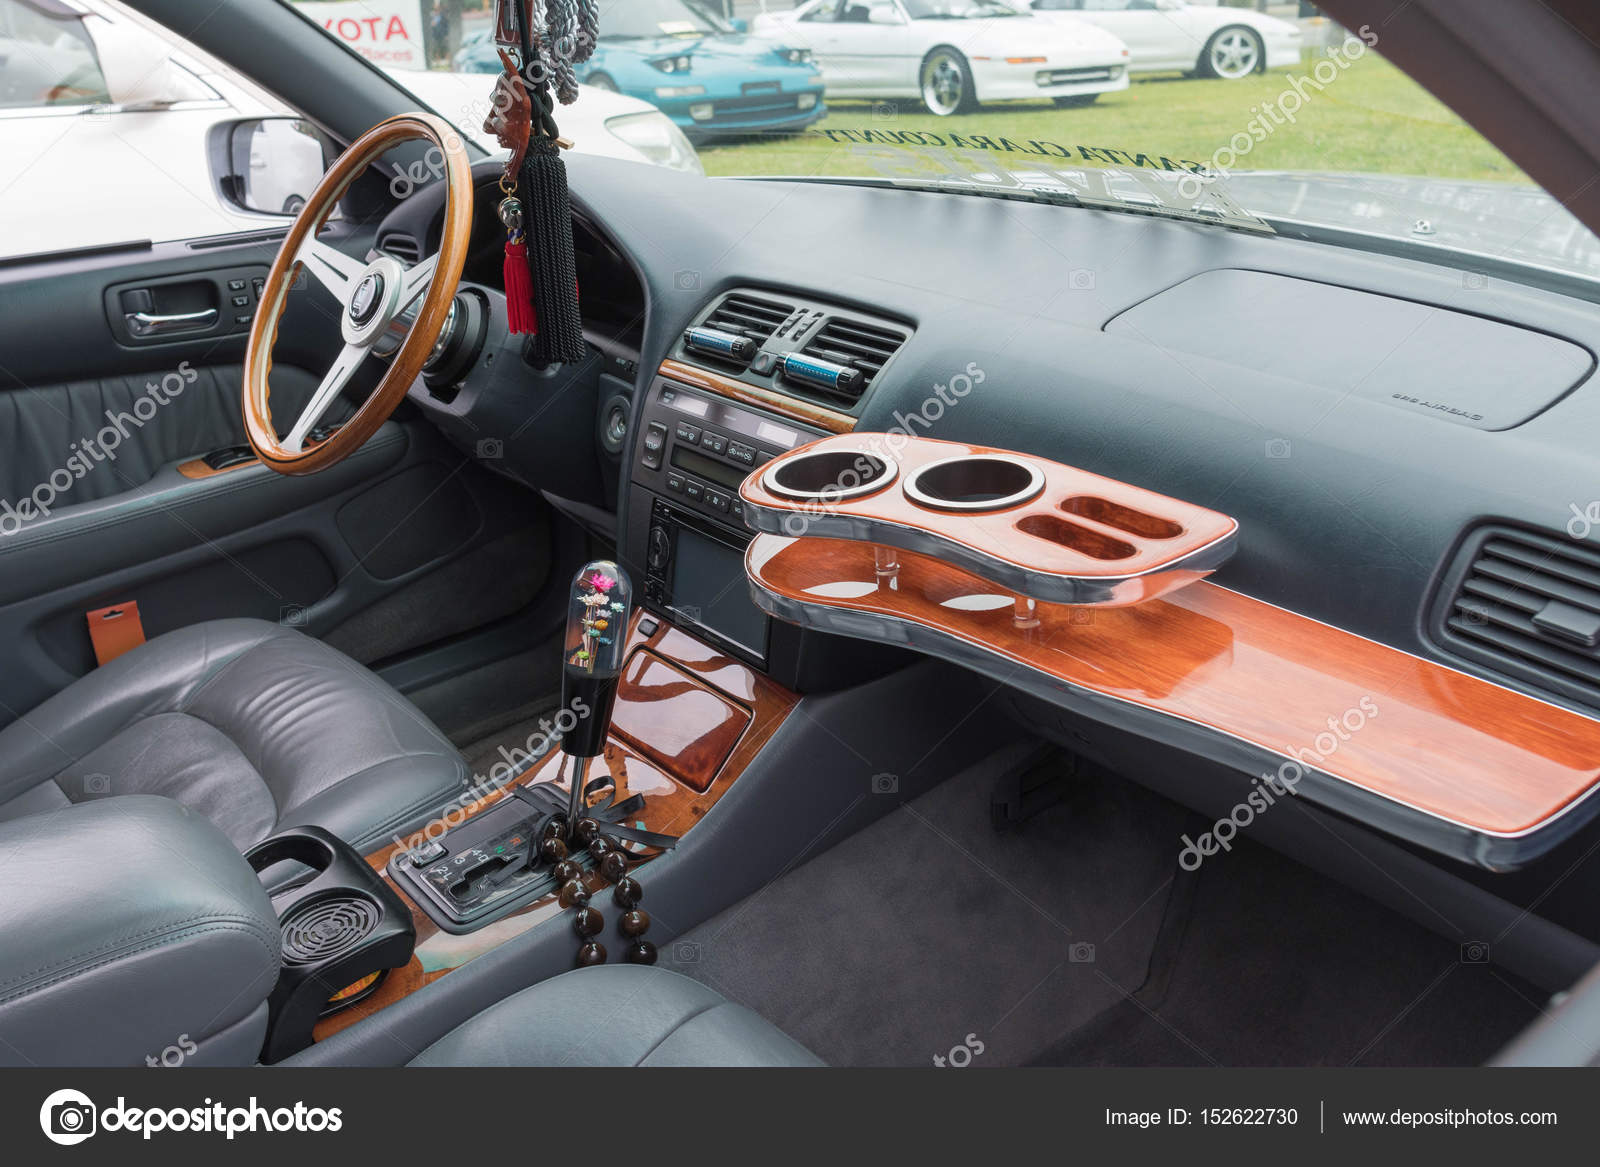 hight resolution of lexus ls 400 interior on display stock photo